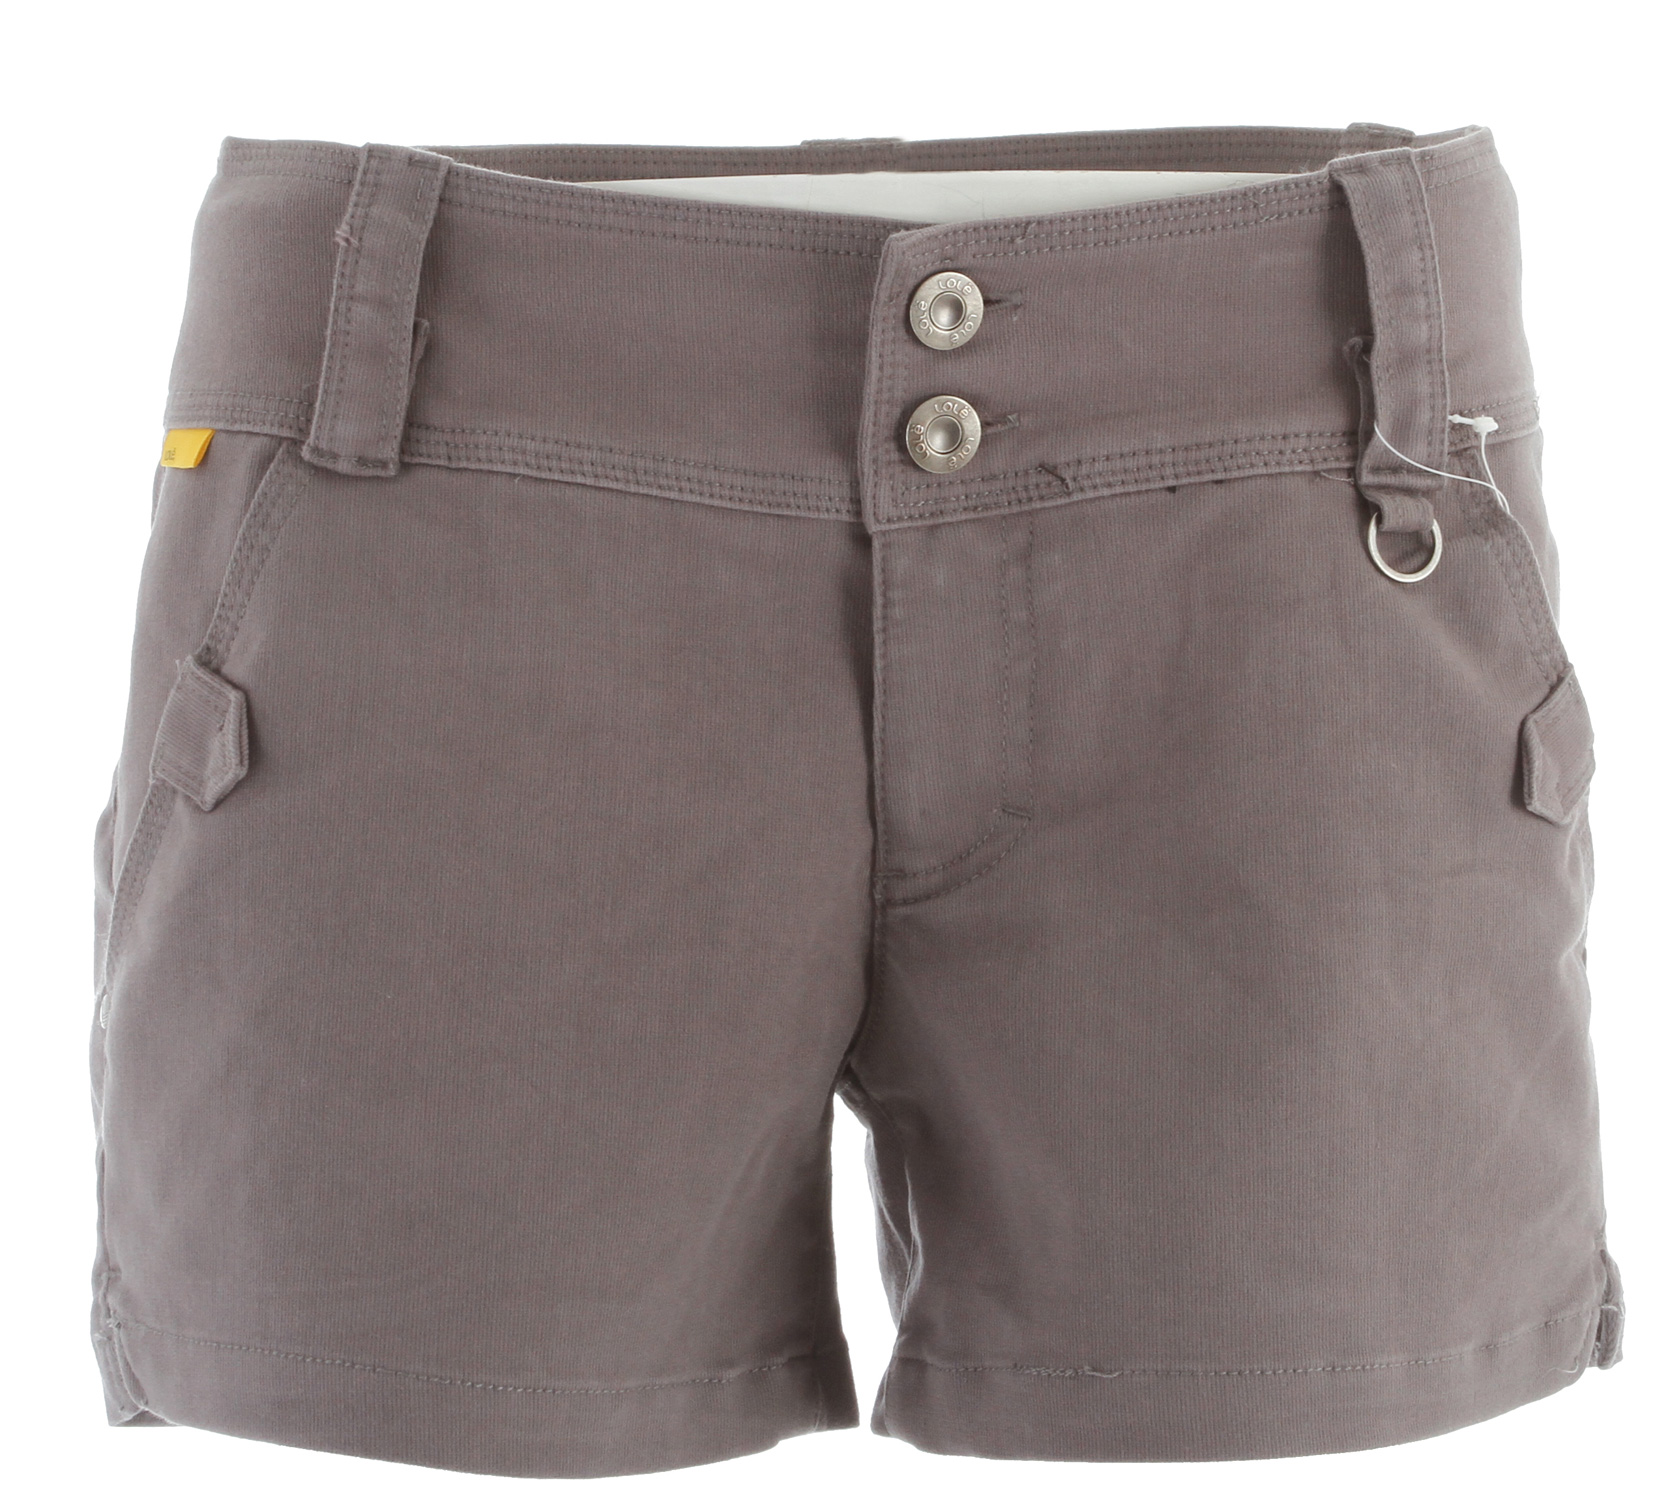 "Camp and Hike Key Features of the Lole Hike Shorts: Shorts with wide waistband 2-button closure at front 2 hand pockets with decorative tabs 1 front secure pocket with flap 2 welt pockets at back D-ring detail at front Side slits Mid rise Straight leg Inseam 4"" - $37.95"